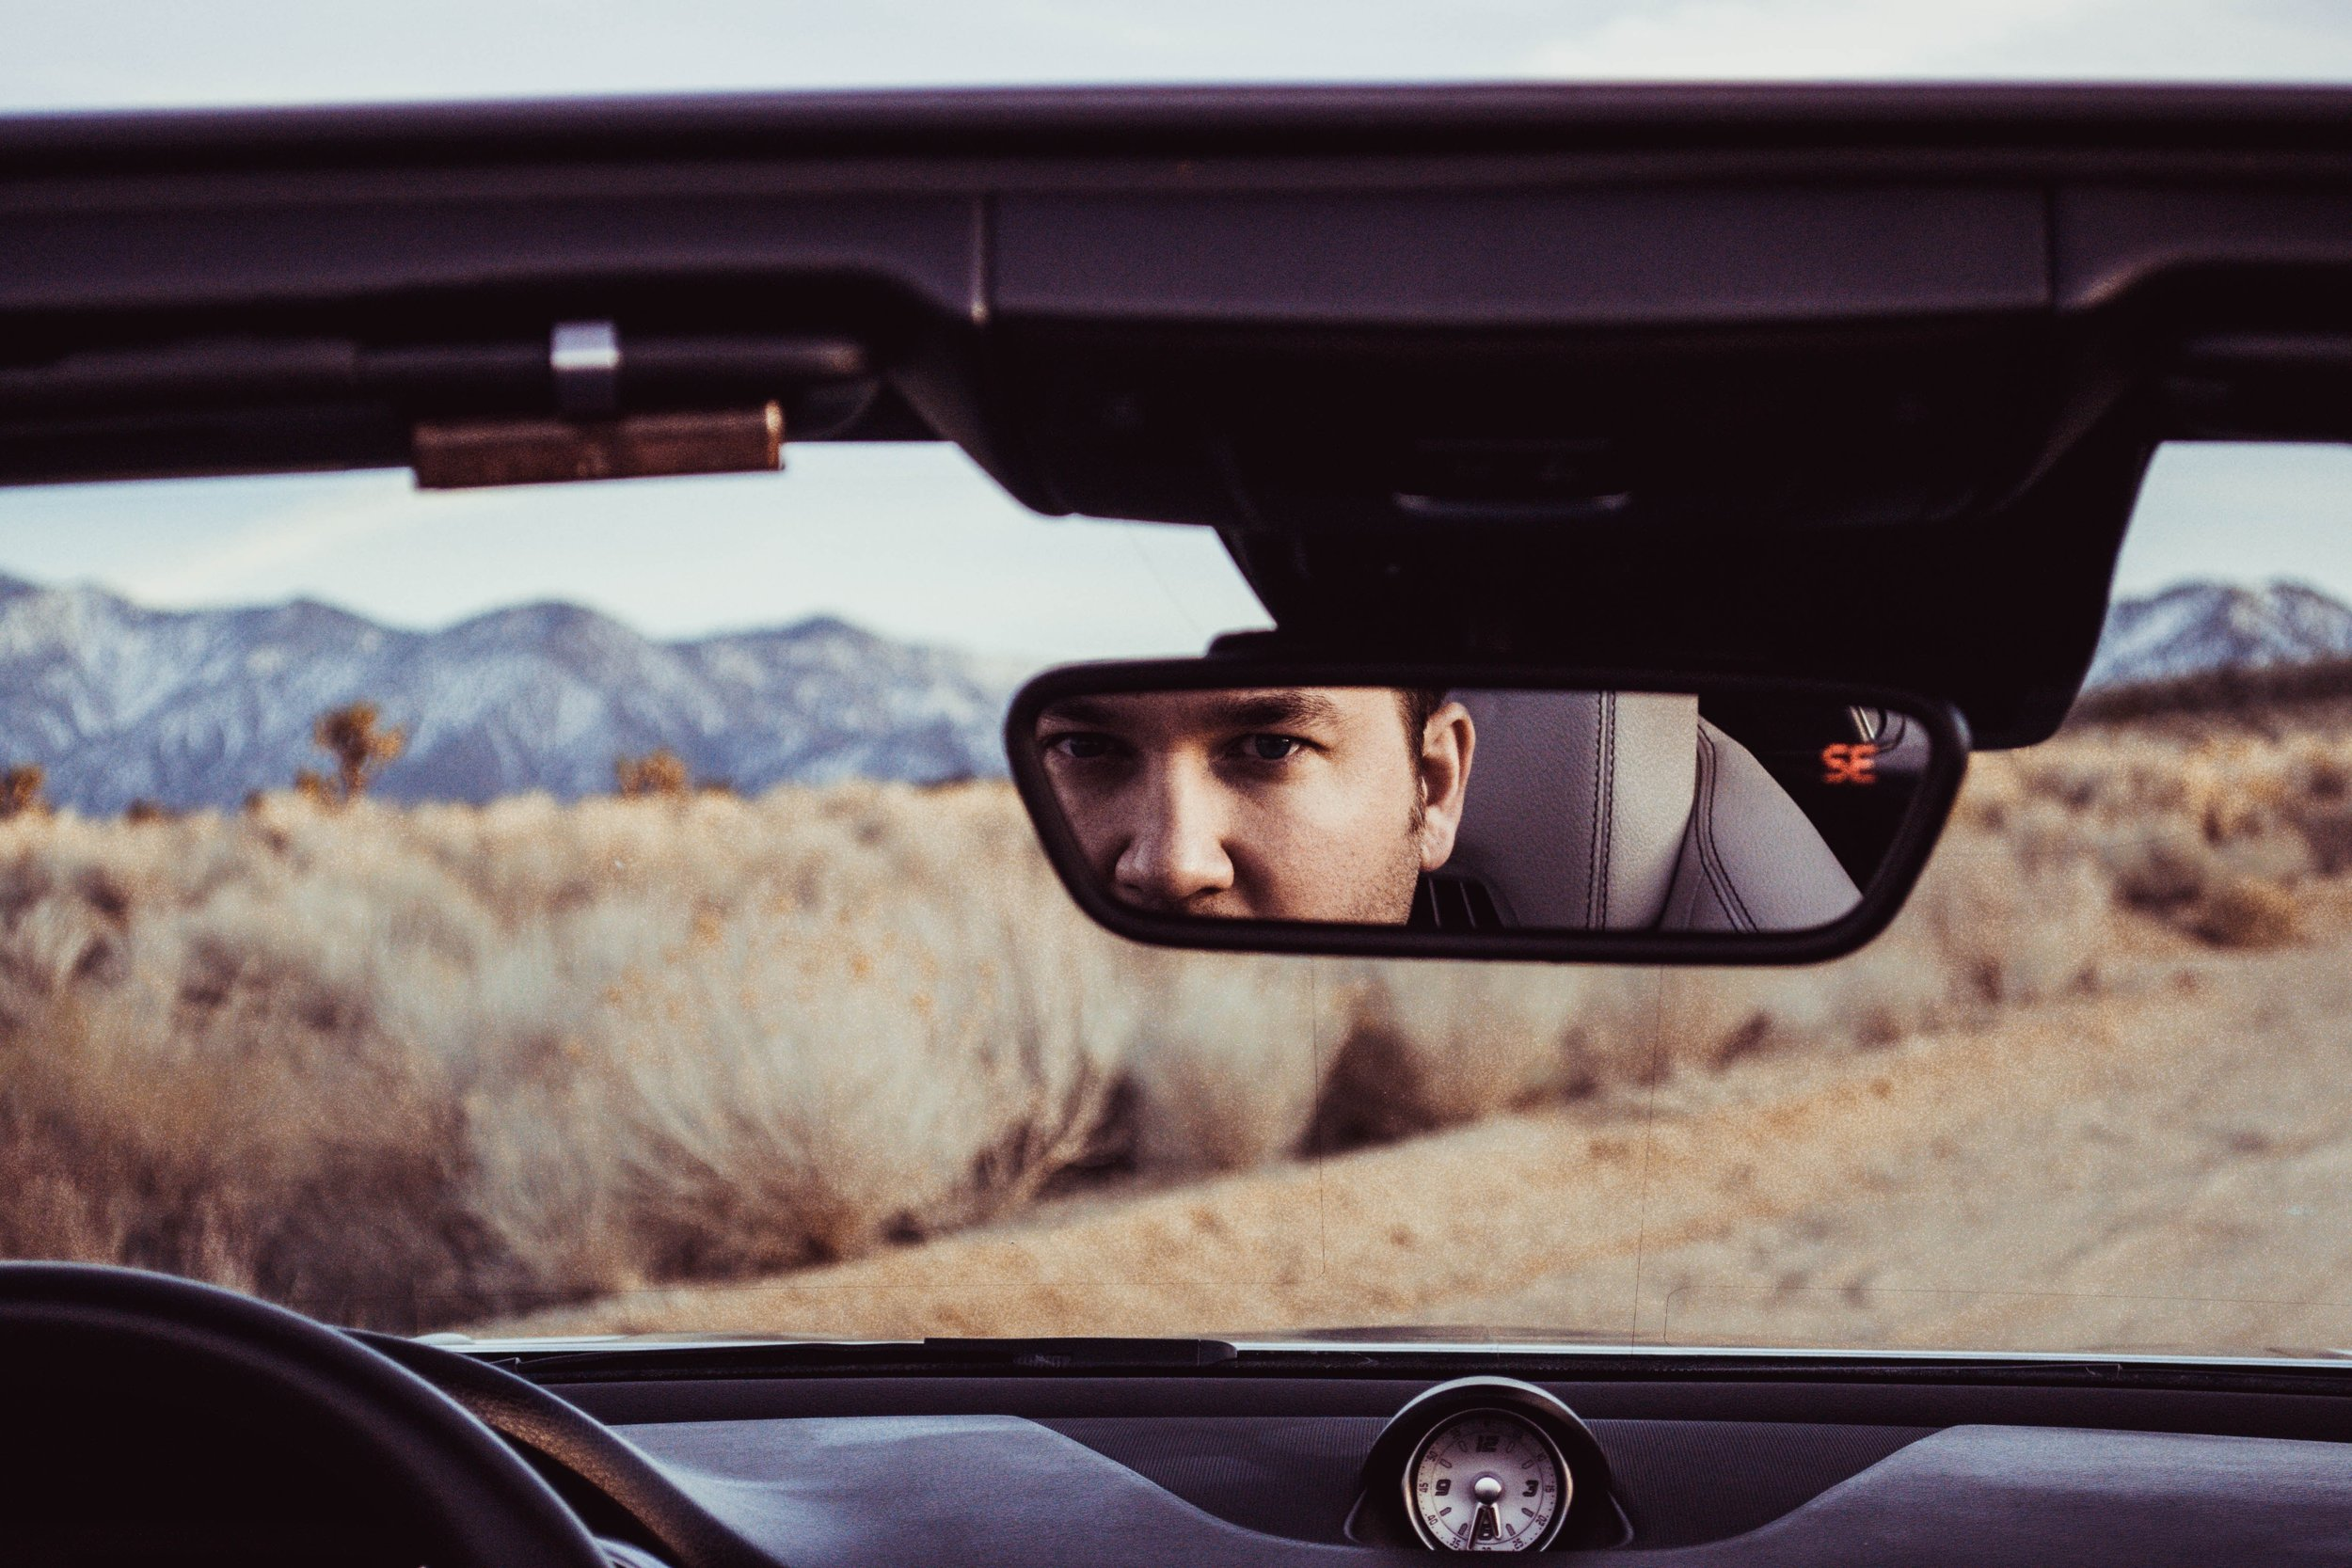 A person reflected in the rear view mirror